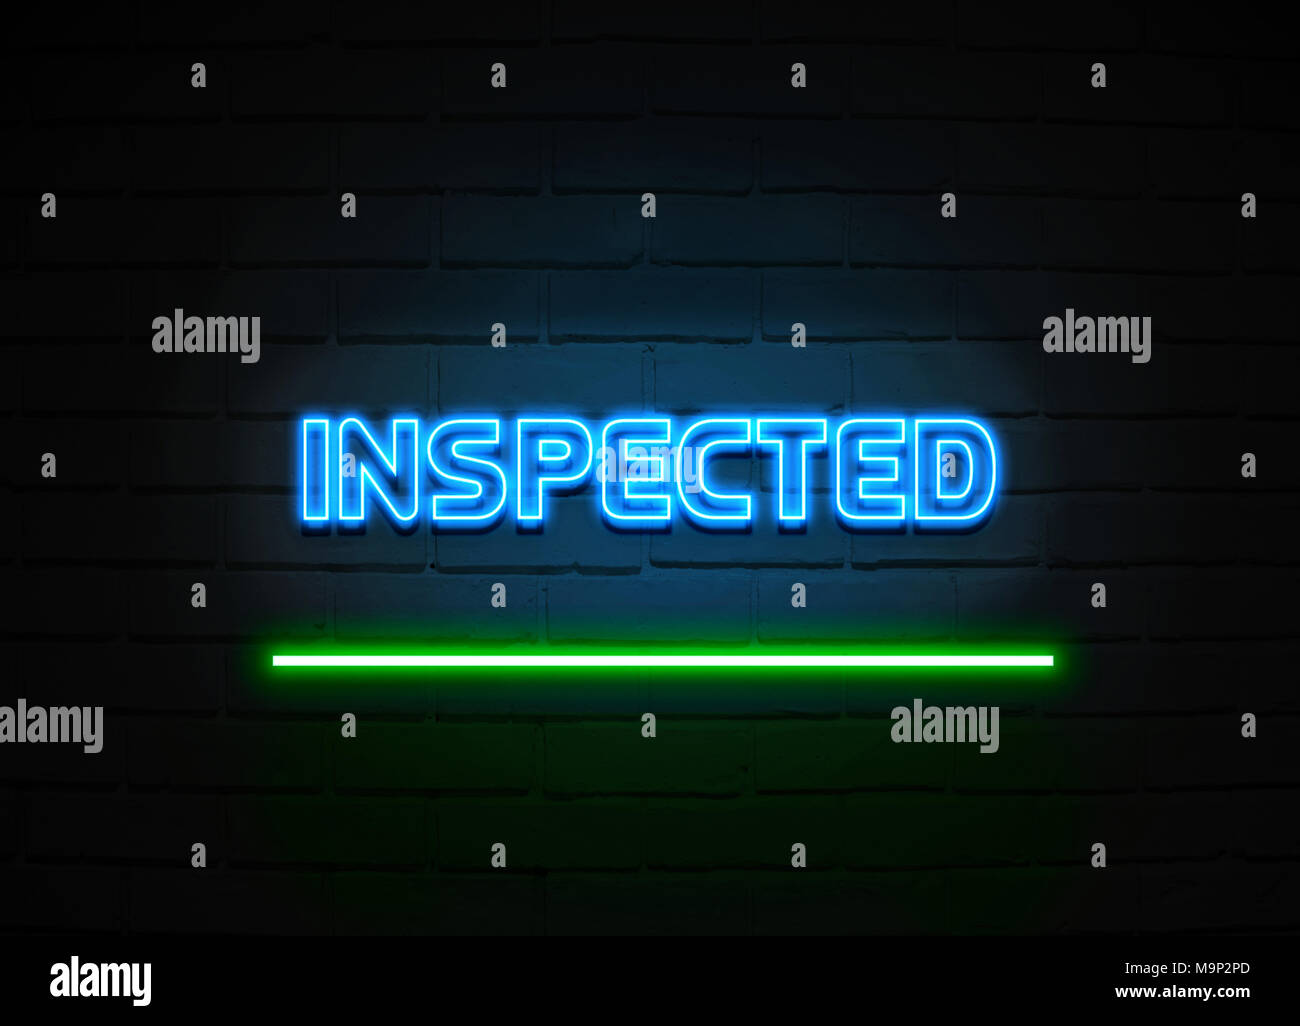 Inspected neon sign - Glowing Neon Sign on brickwall wall - 3D rendered royalty free stock illustration. - Stock Image